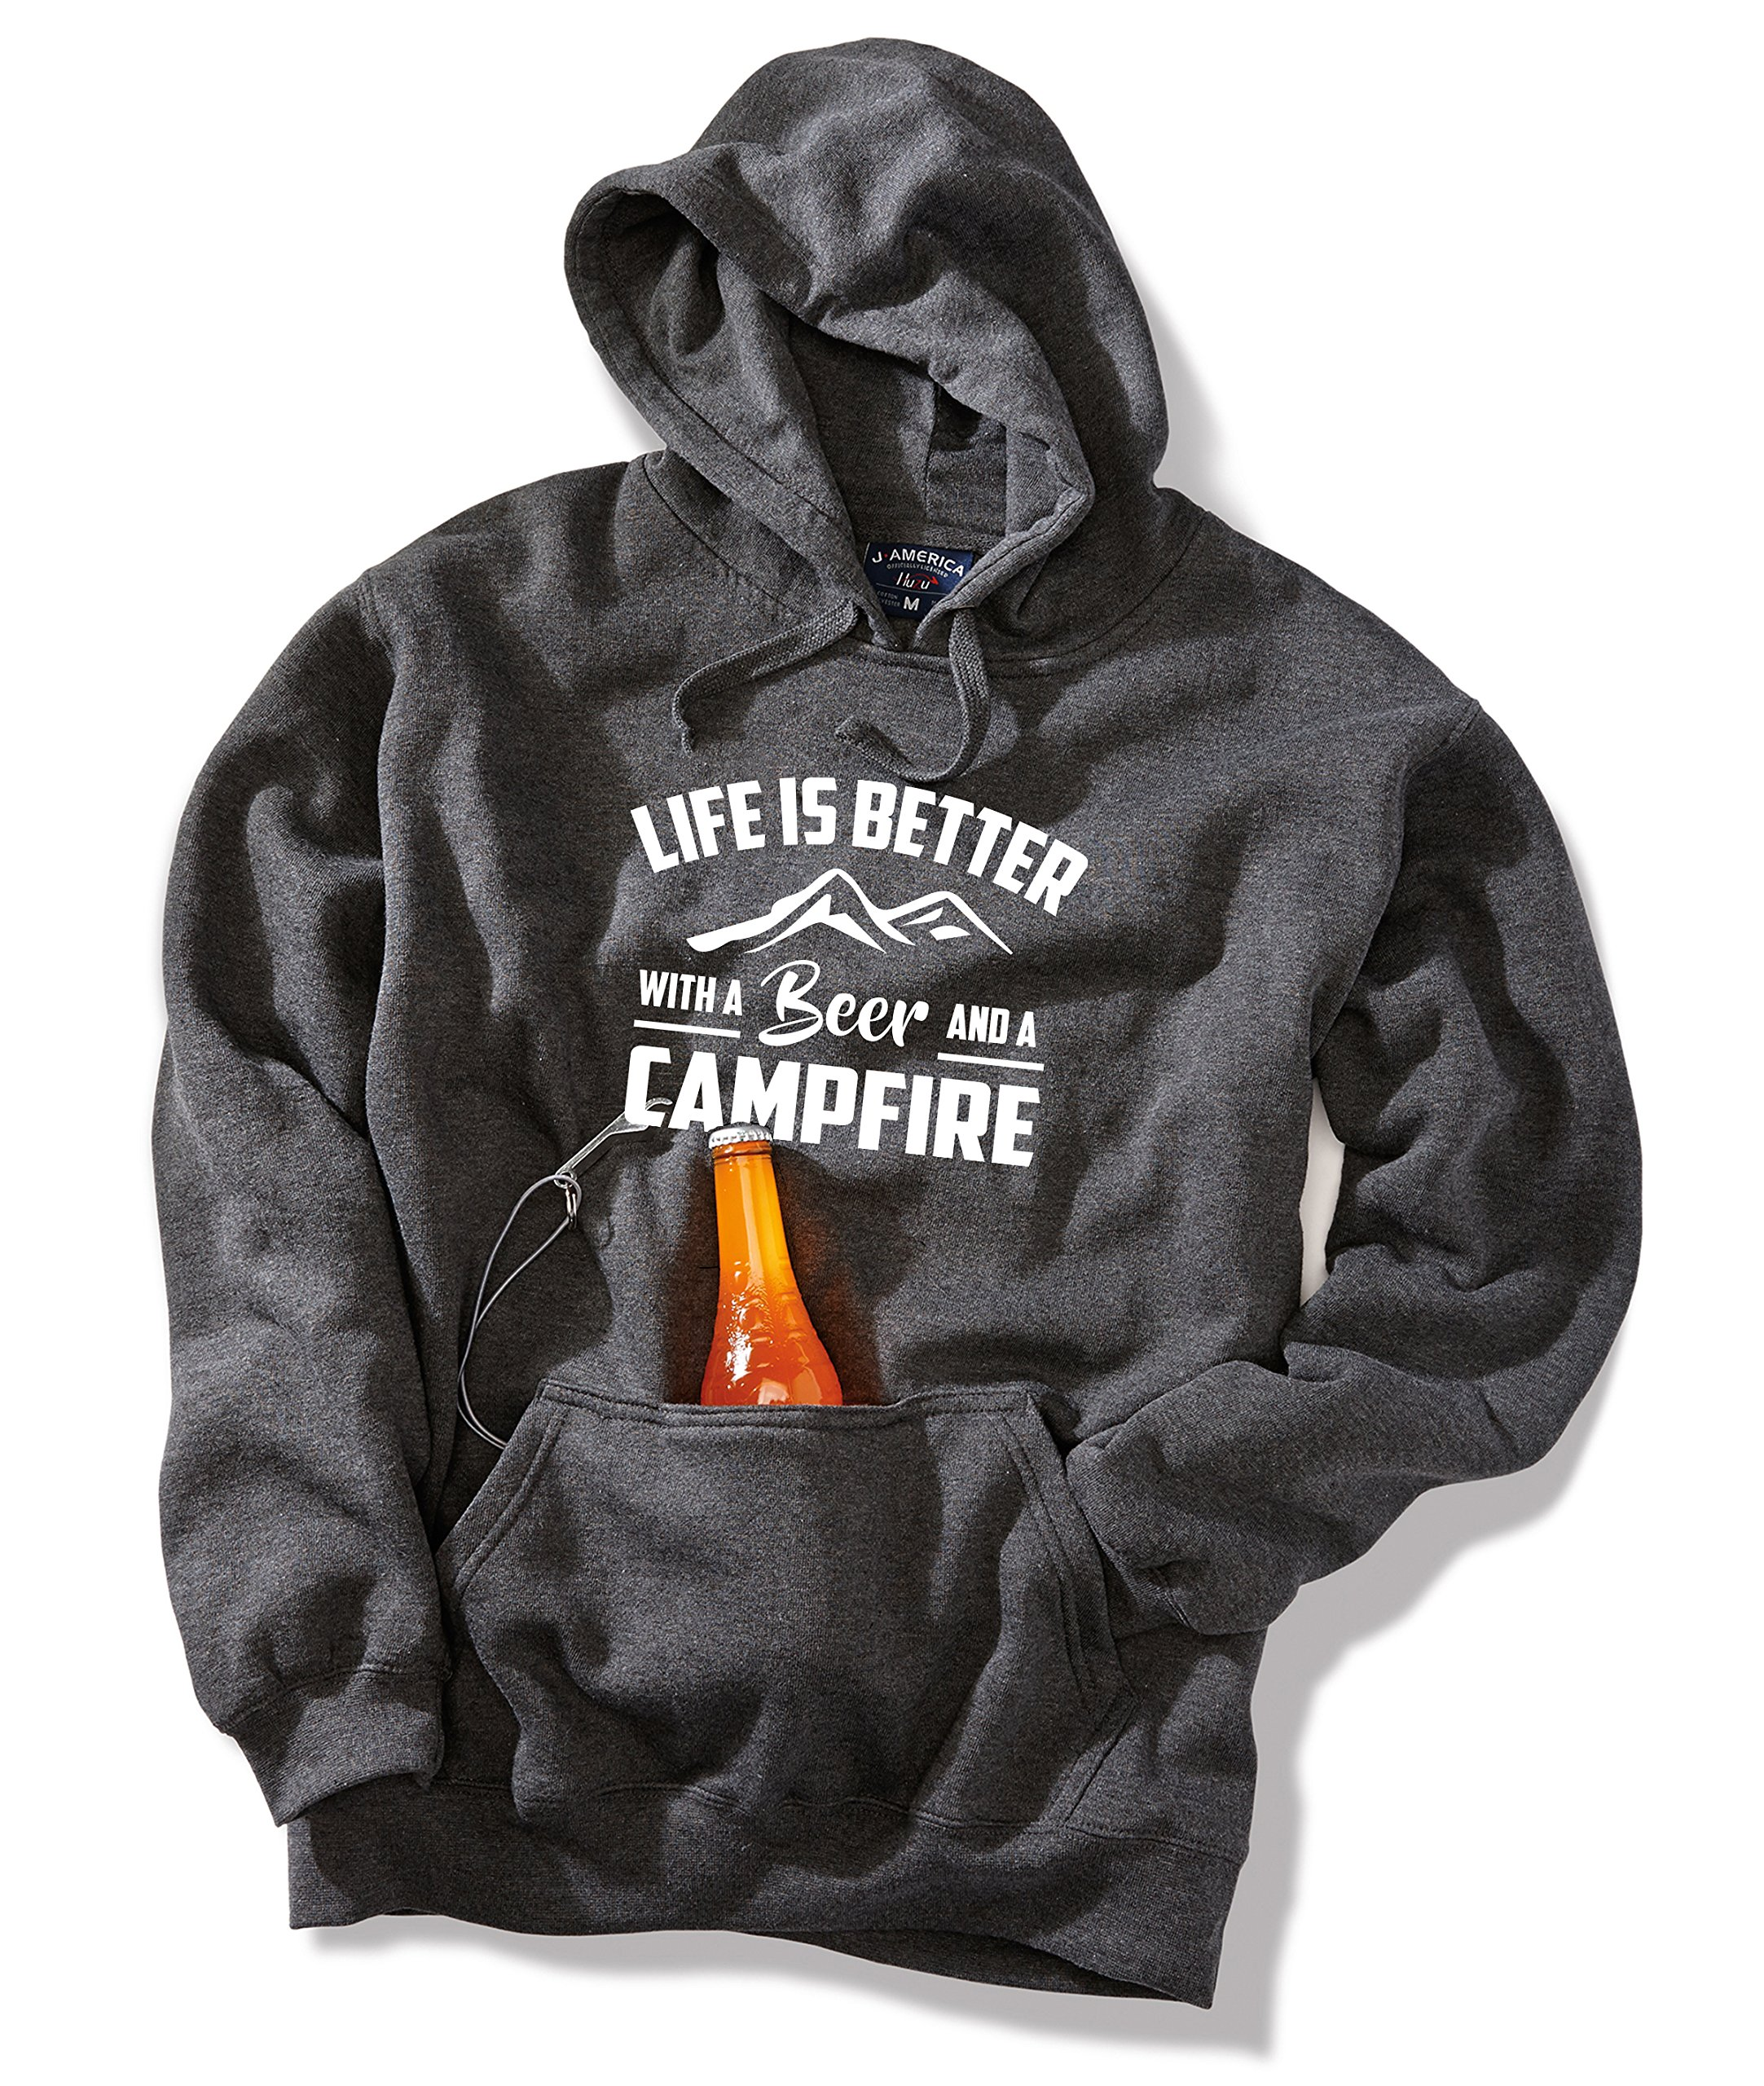 Life is better, camping, happy camper, lake life, camper, camping shirt, the mountains are calling, camping gear, camping, campfire, beer